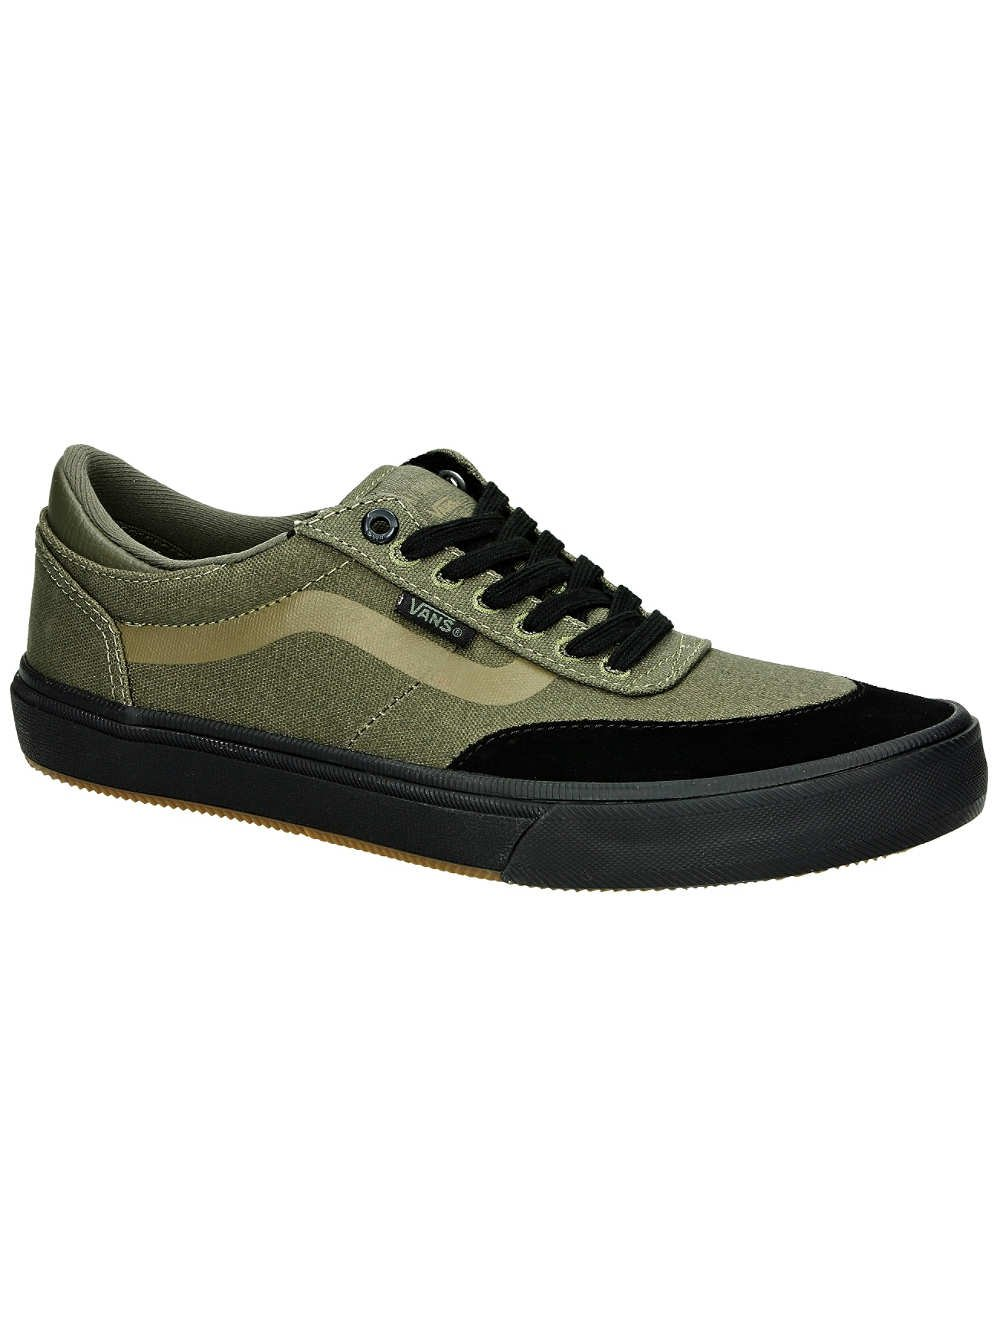 bb39aa48a5 Galleon - Vans - Mens Gilbert Crockett Skate Shoes